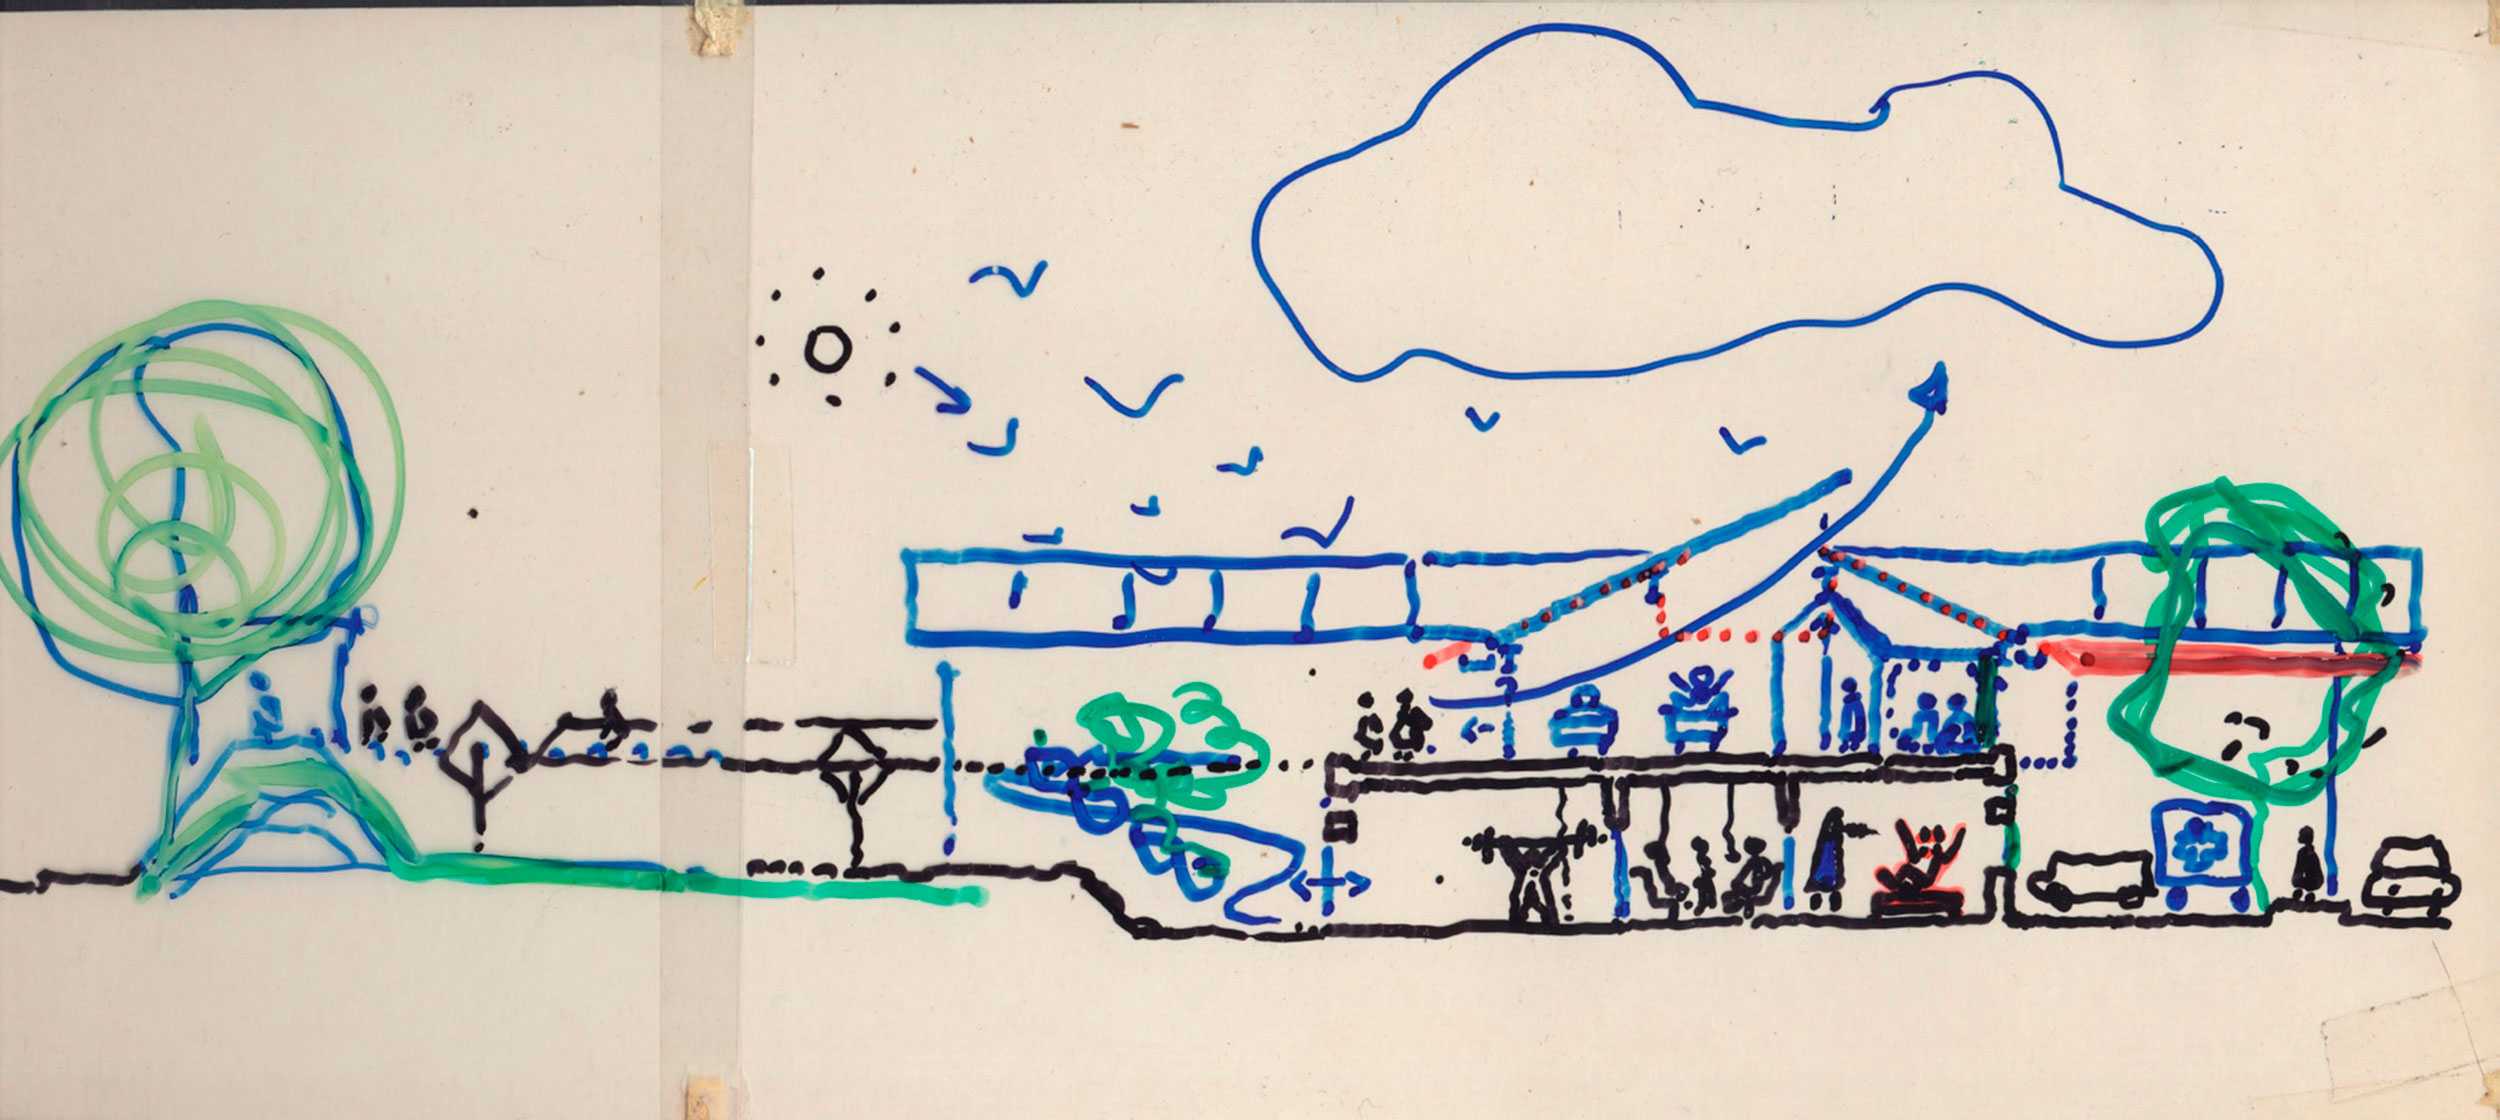 Lambeth Community Care Centre section sketch by Ted Cullinan